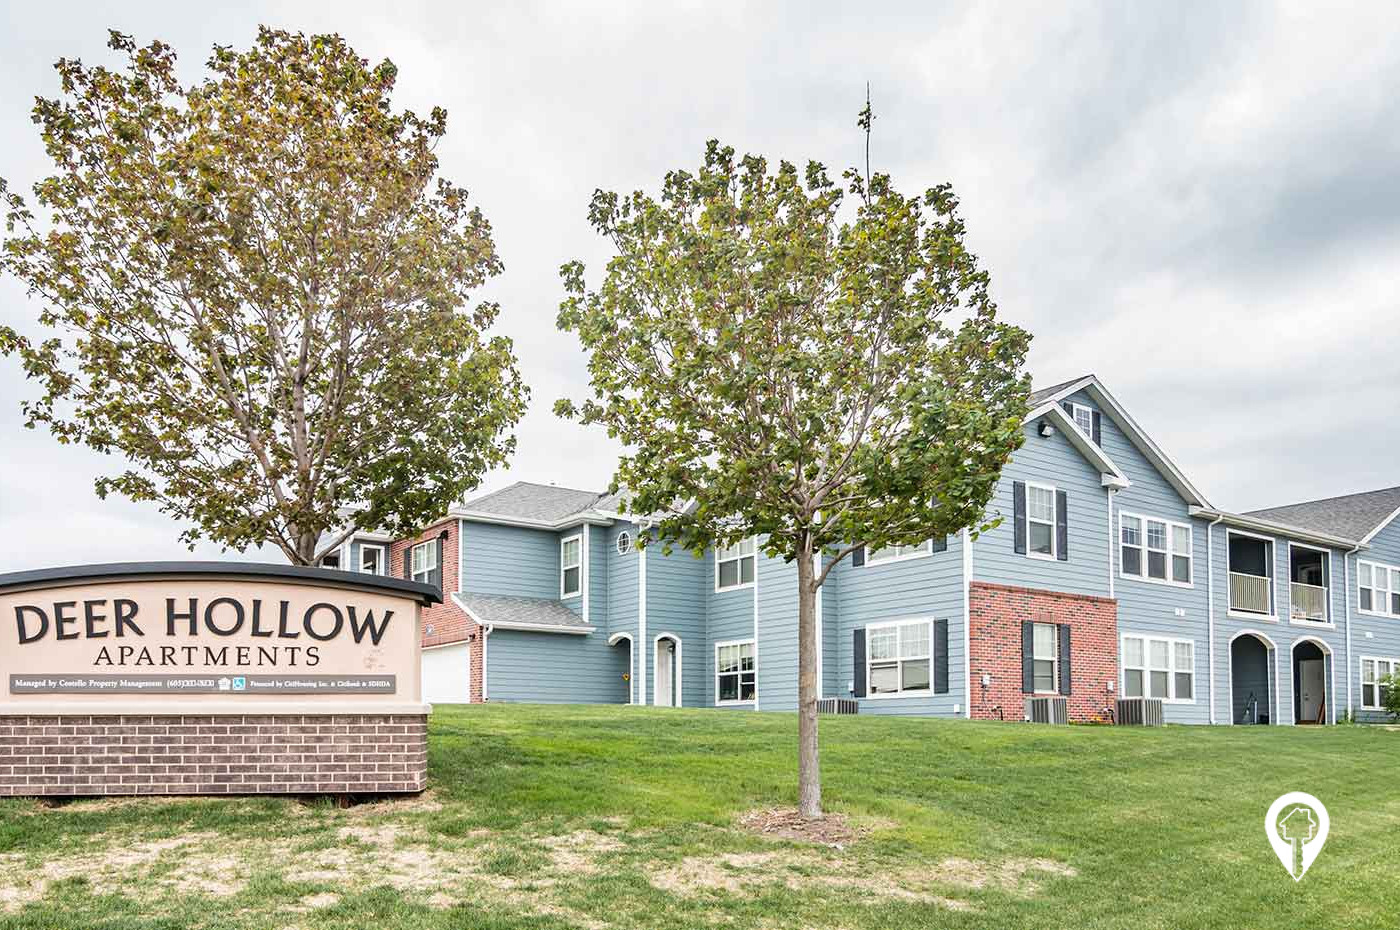 Deer Hollow Apartments